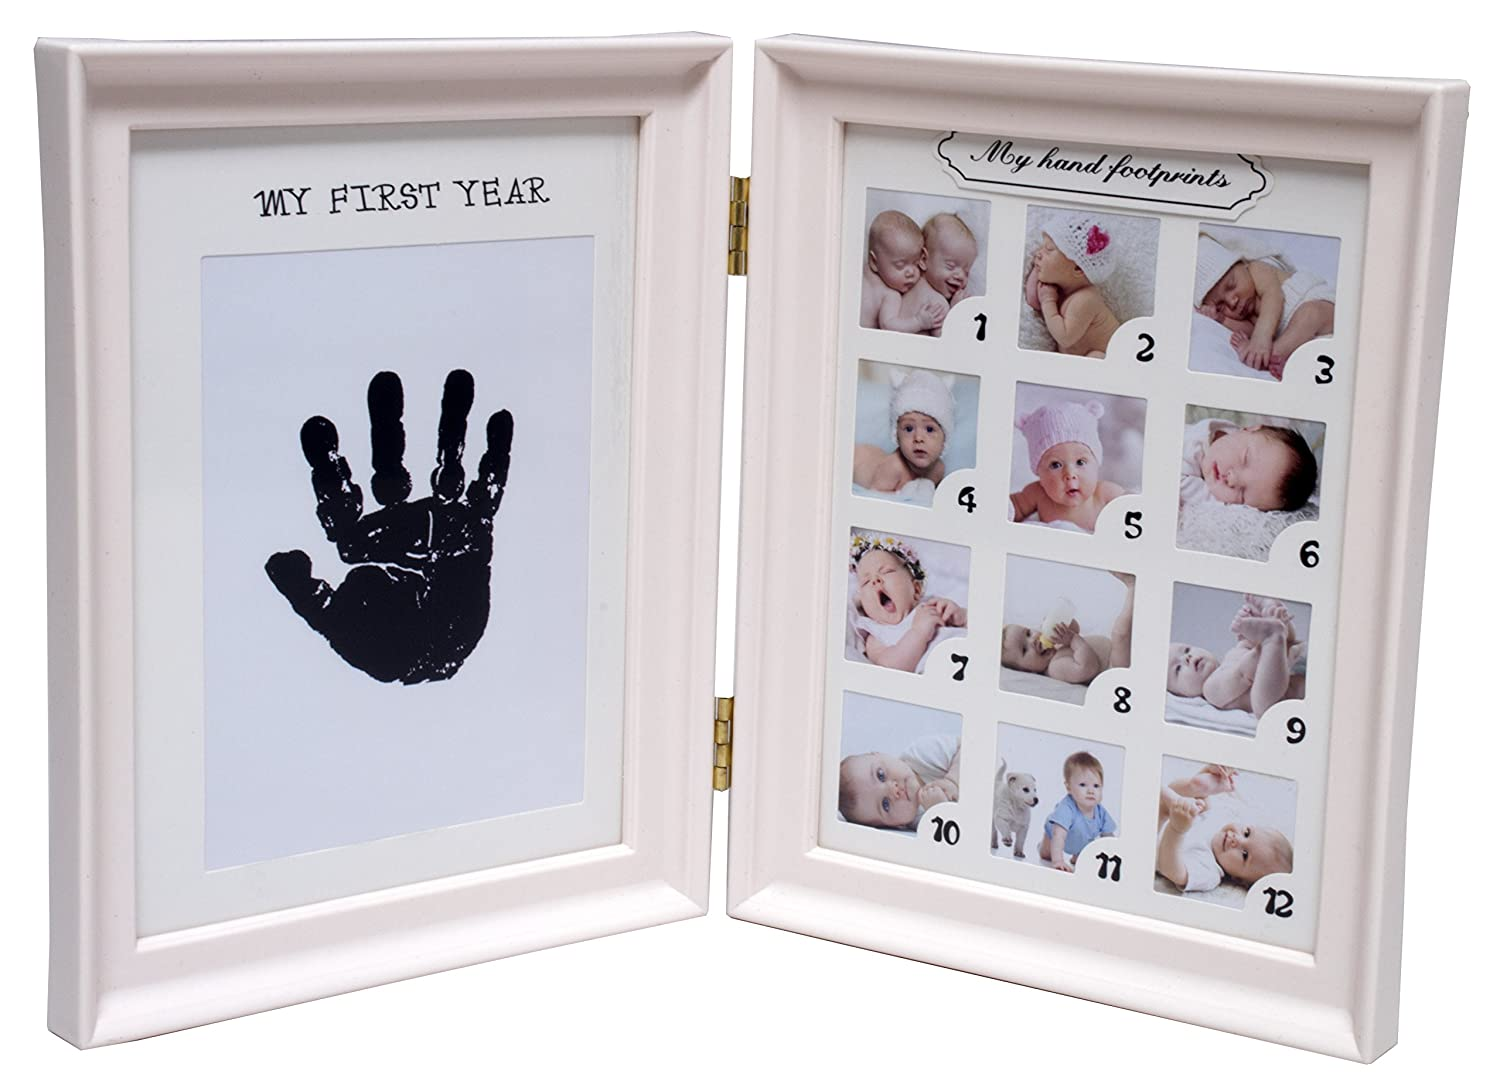 Royal Brands Baby Picture Frame - Baby Growth Collage Decor, Idea for Boy and Girl, Book Shaped Prints and 12 Pictures (Pink)